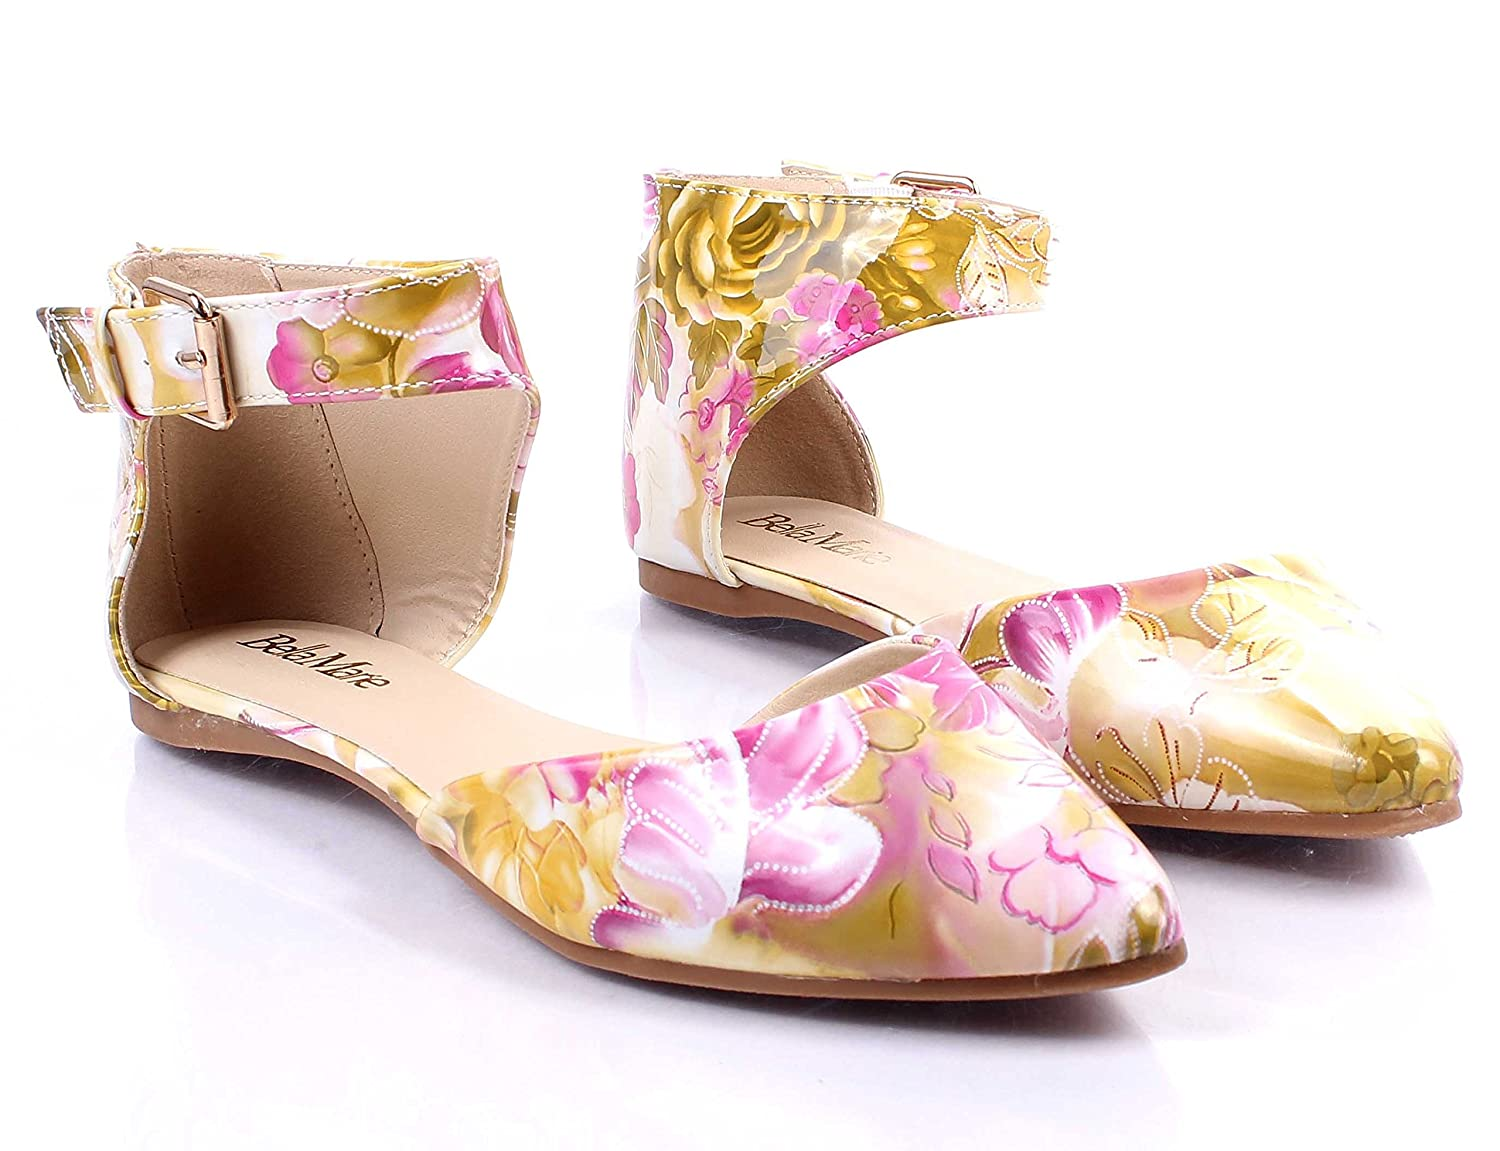 weyoh Floral Print Casual Lady Ankle Strappy Point Toe Fashion Women Ballet Flats Size Without Box